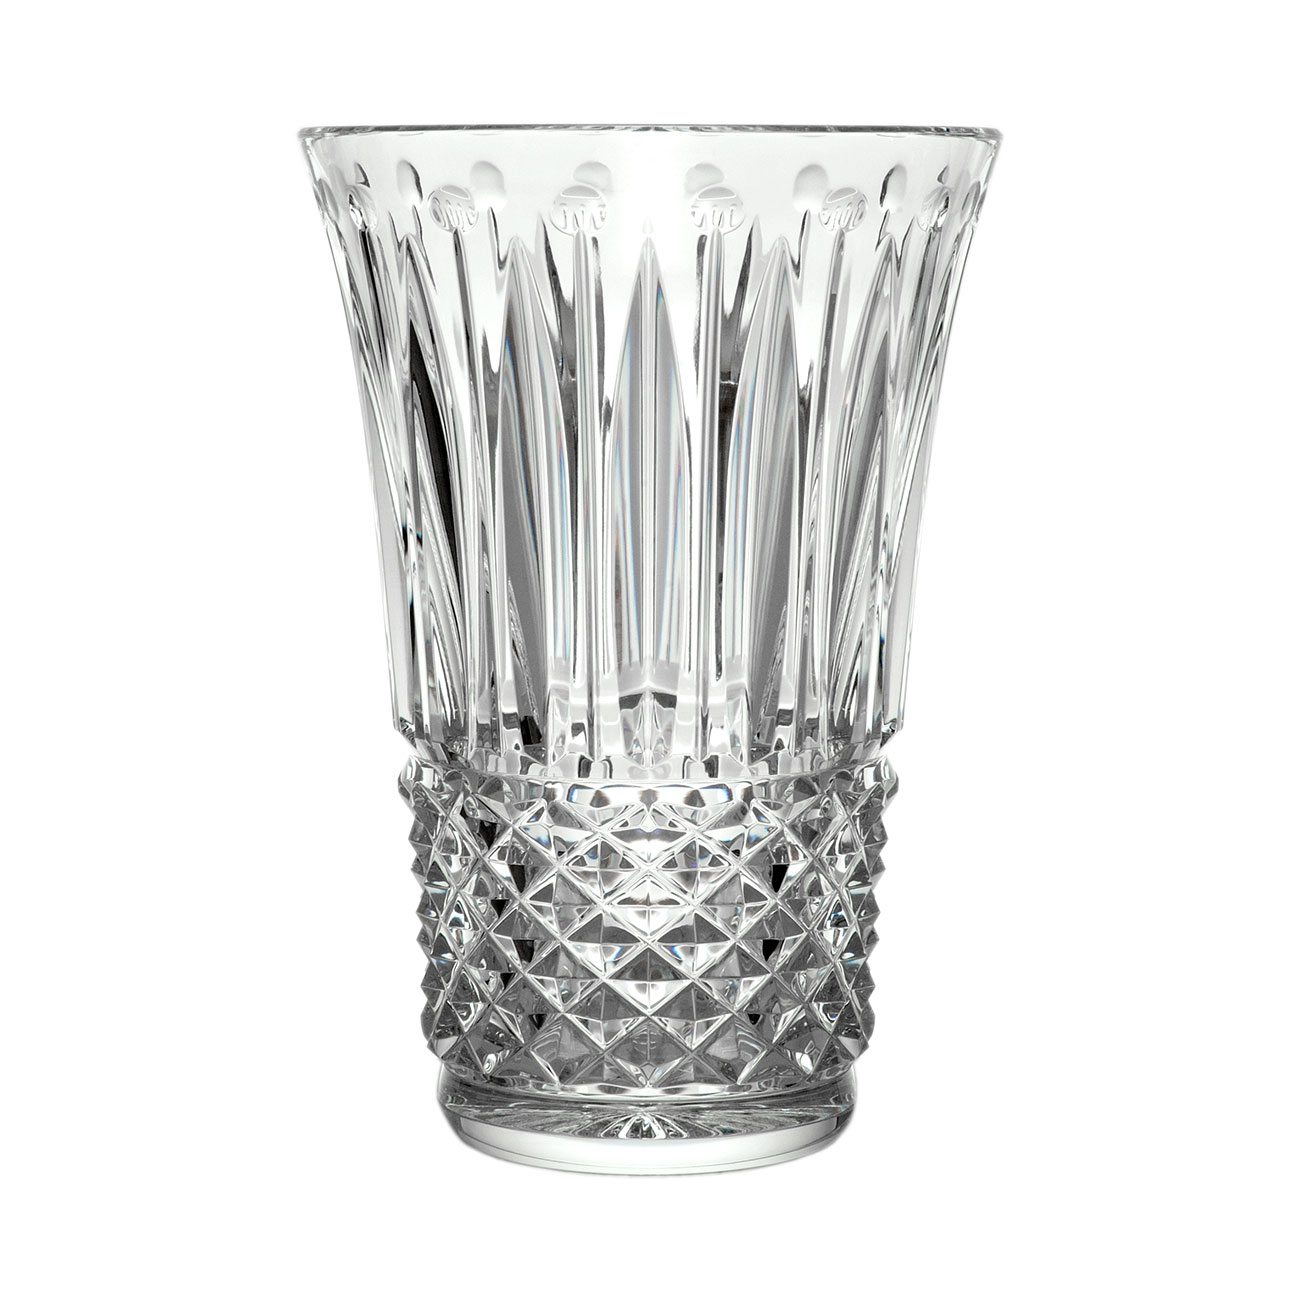 Saint-Louis Crystal Tommyssimo Clear Vase, 11-inch